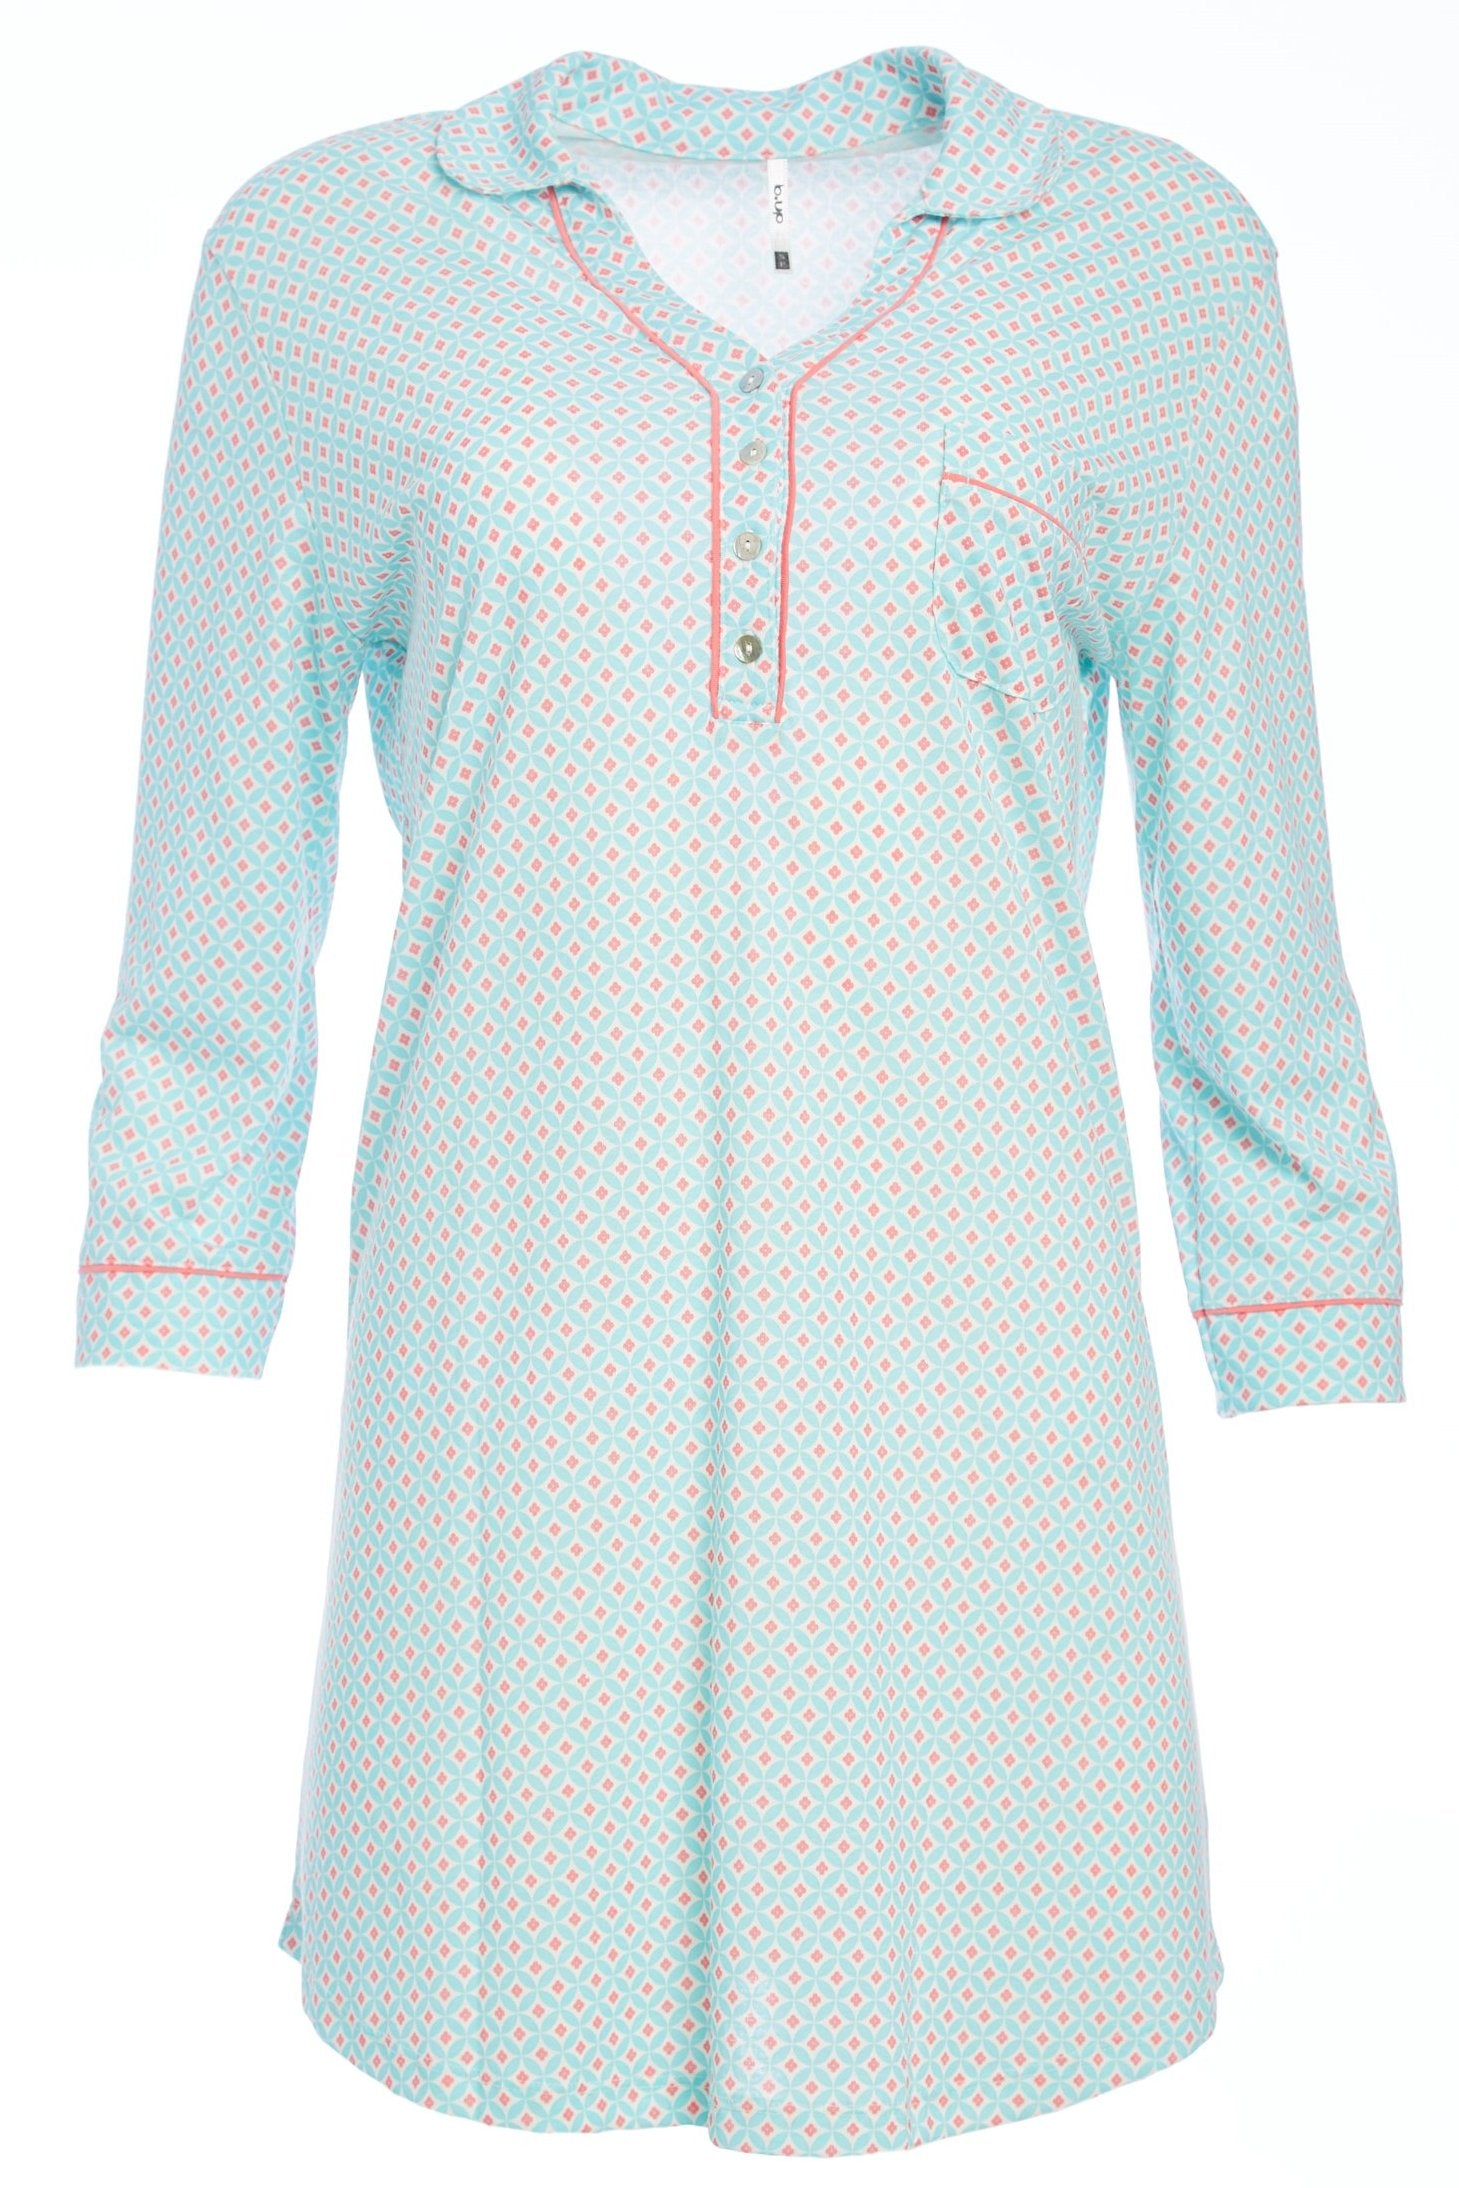 Misha Bracelet Length Pull Over Sleepshirt - Sales Rack